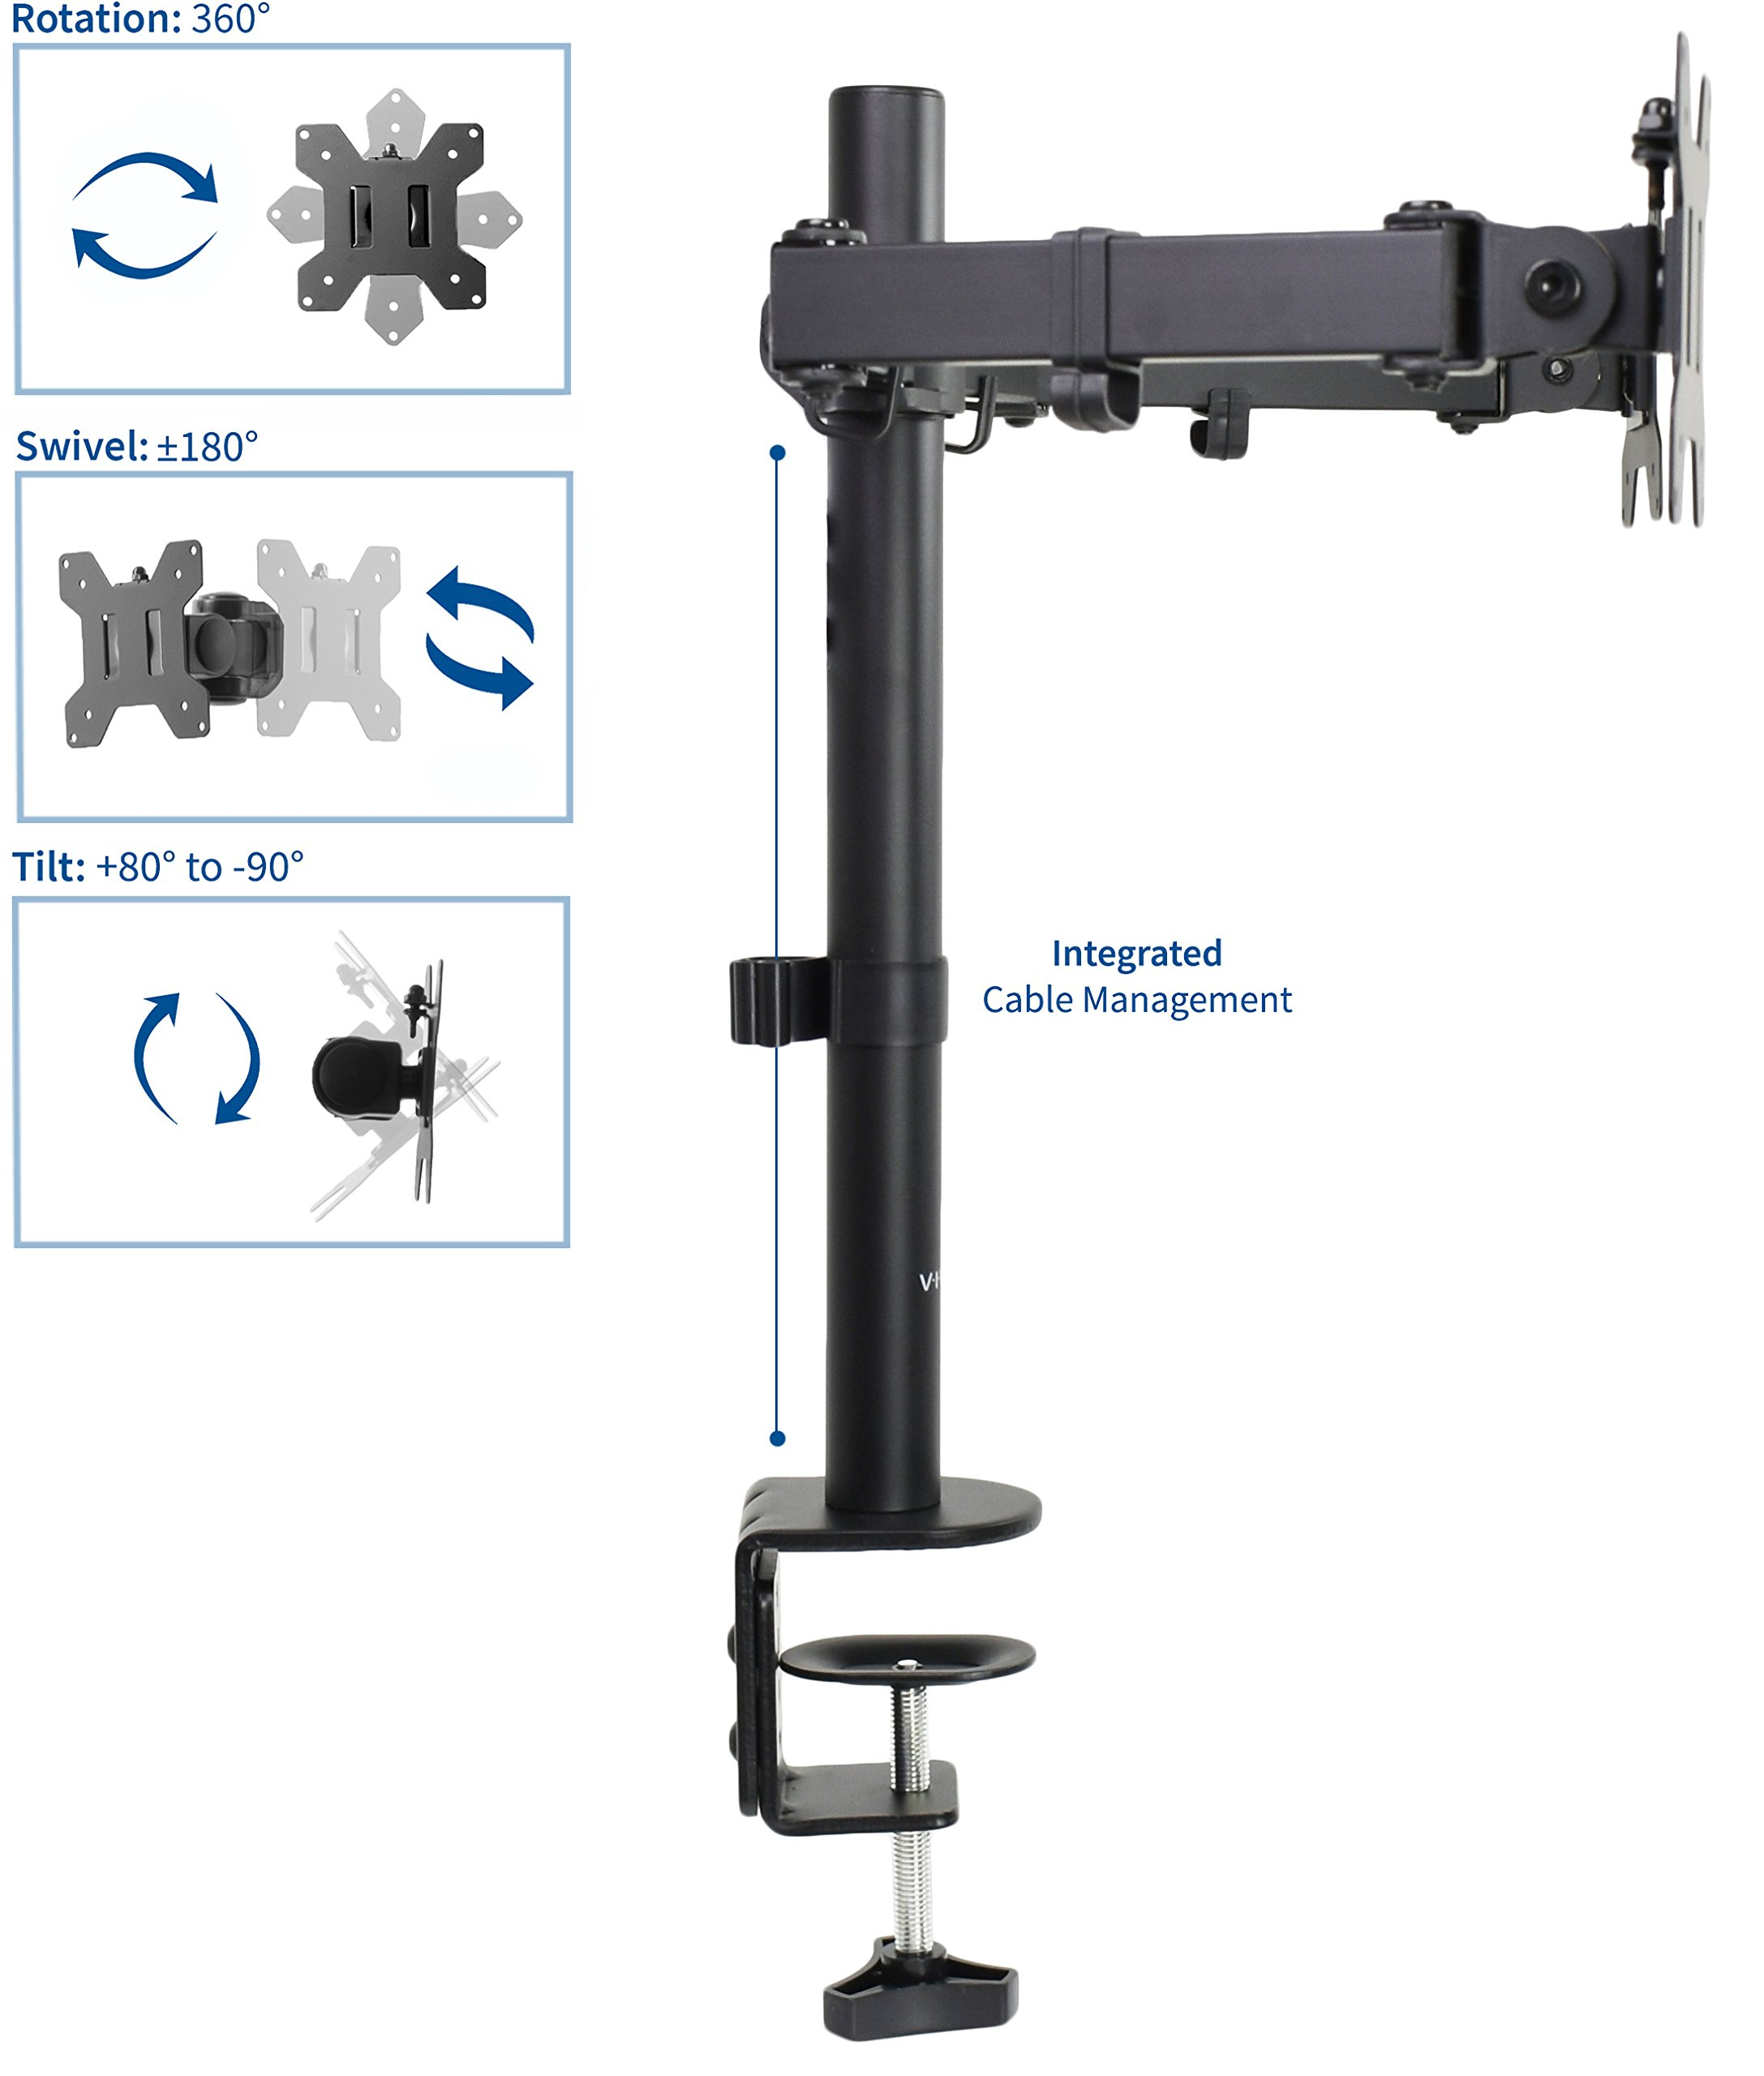 VIVO Dual LCD LED Monitor Desk Mount Stand Heavy Duty Fully Adjustable fits 2/Two Screens up to 27'' (STAND-V002) by VIVO (Image #3)